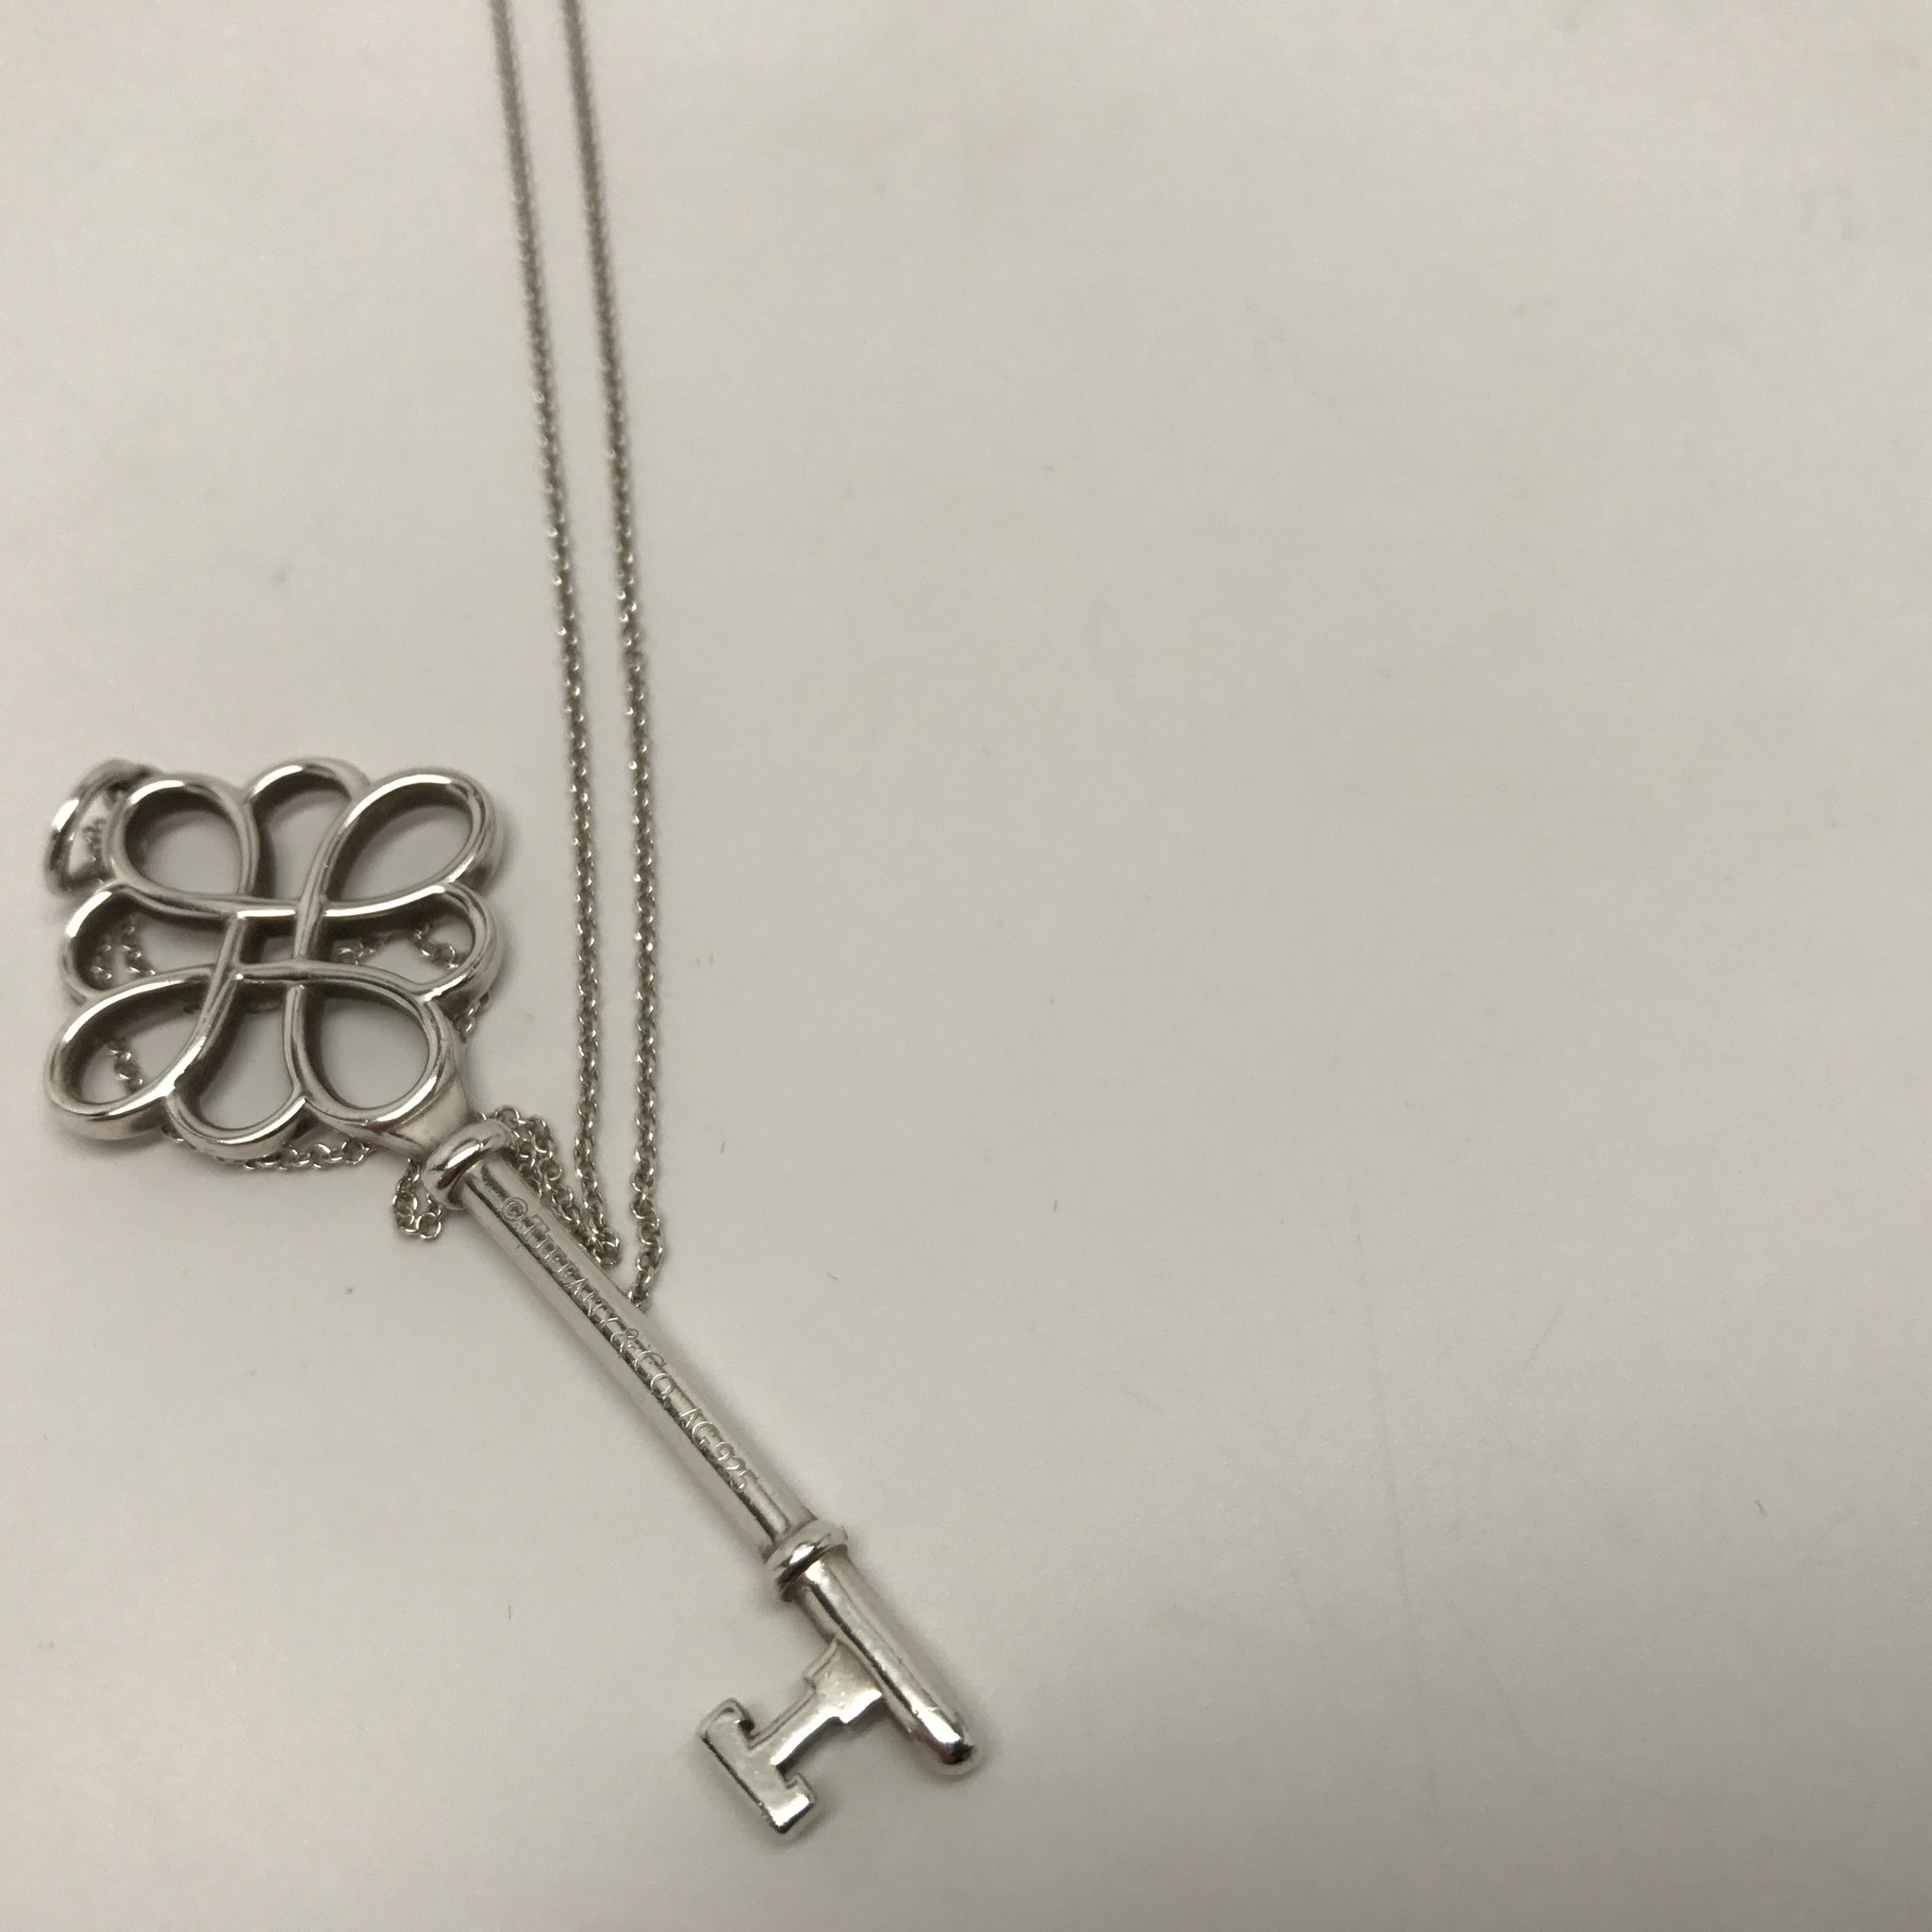 TIFFANY & CO. KNOT KEY PENDANT WITH CHAIN